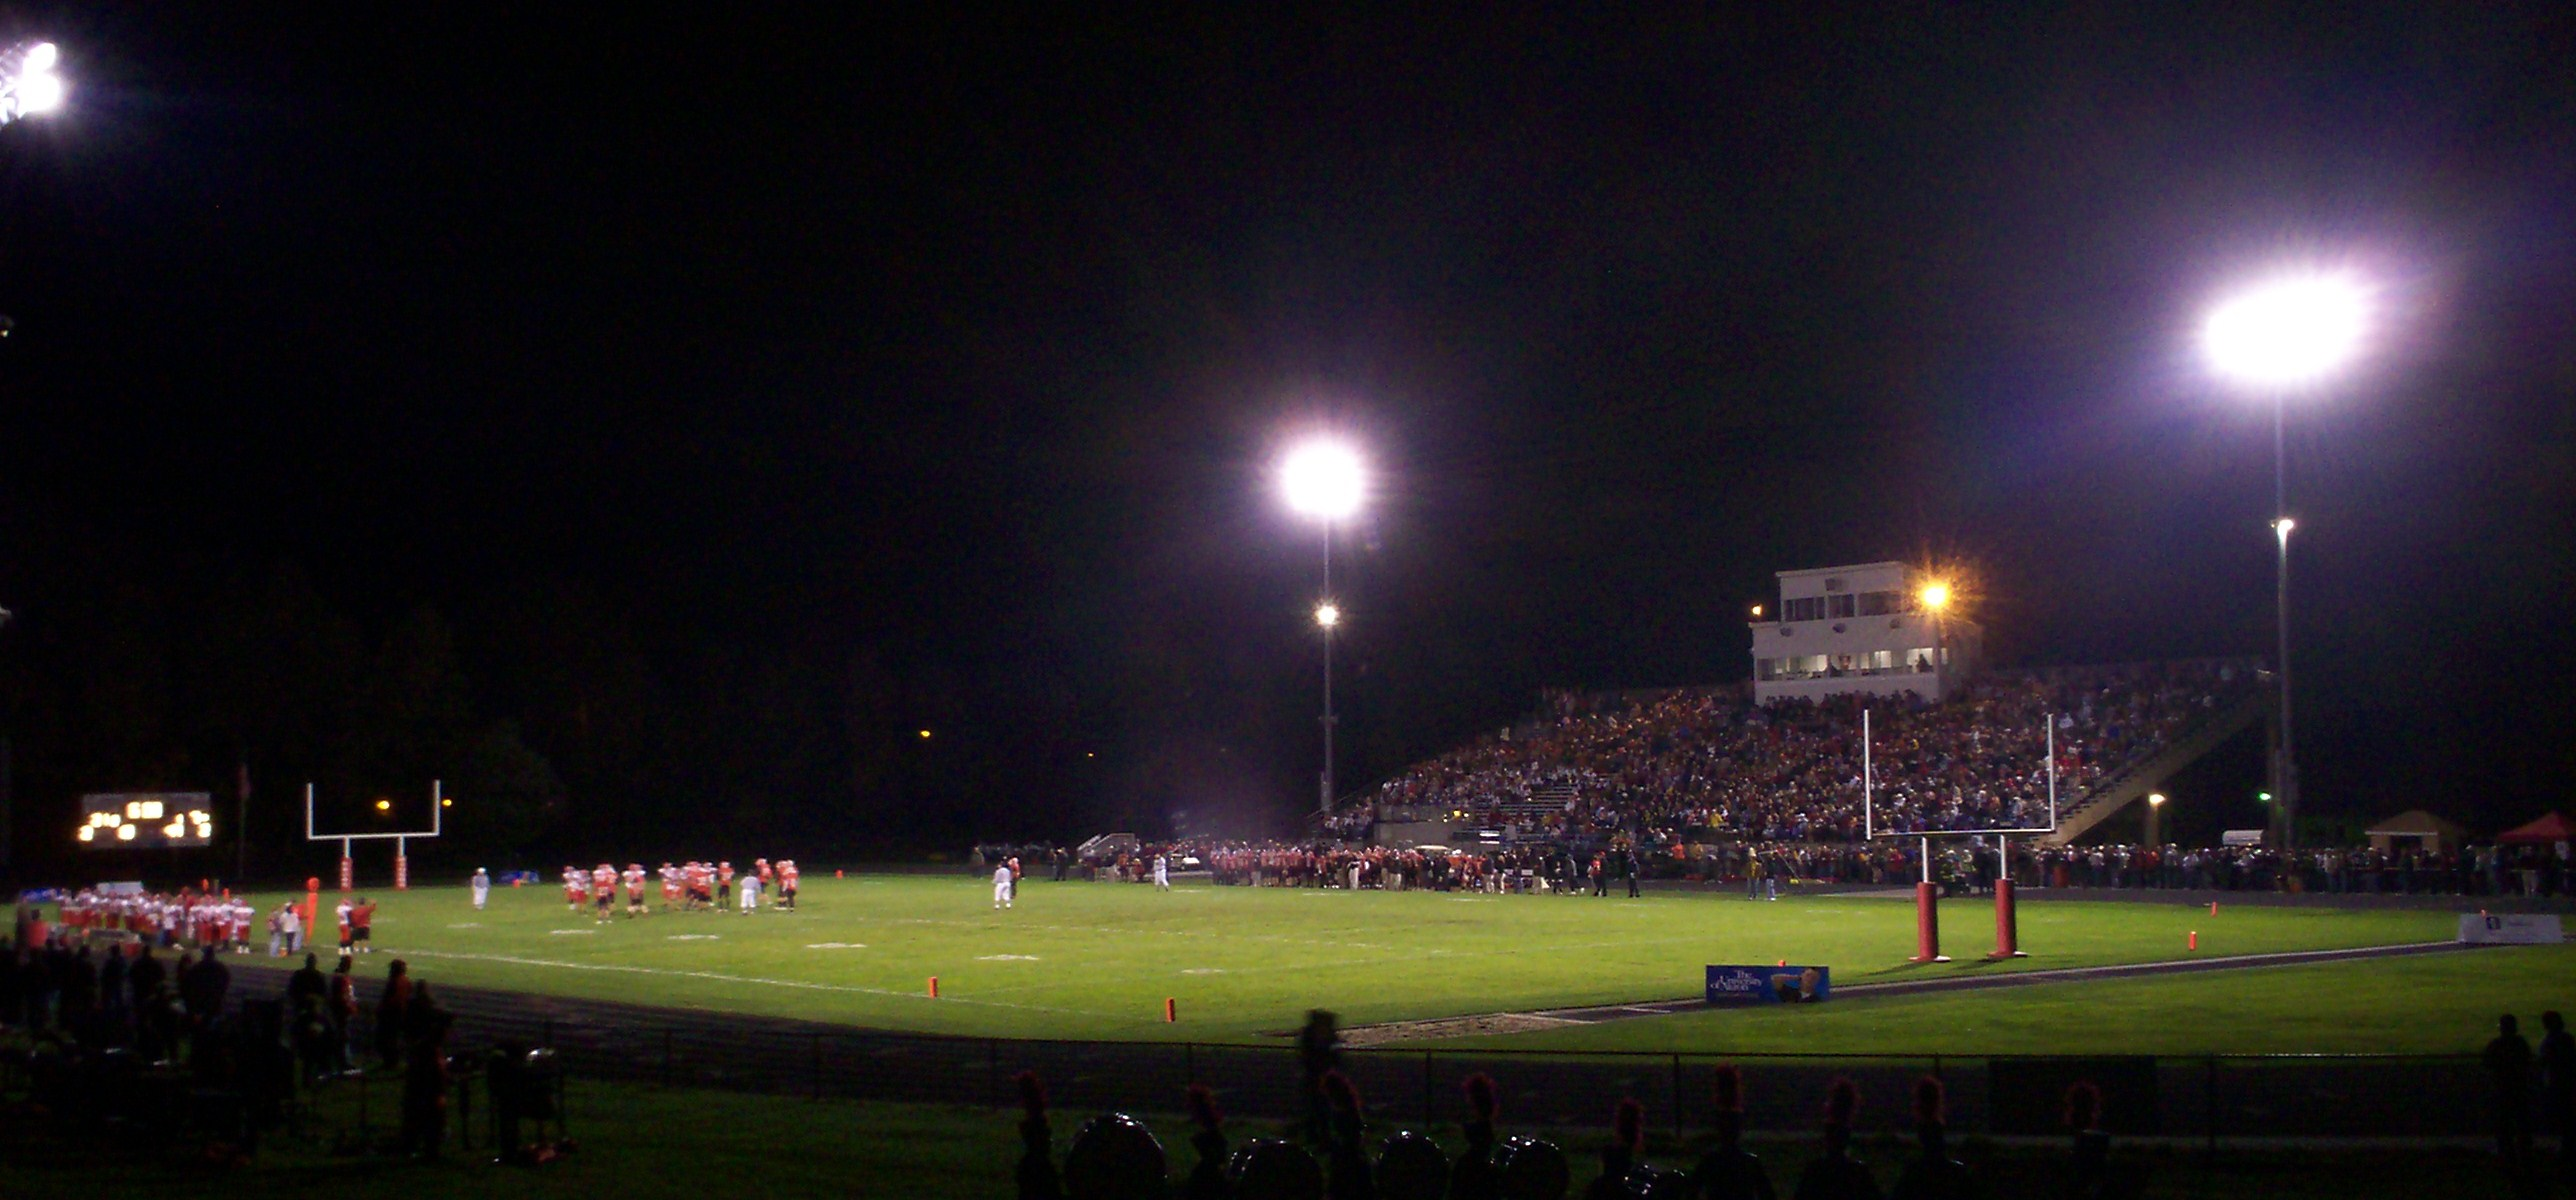 Roosevelt_Stadium_night_2